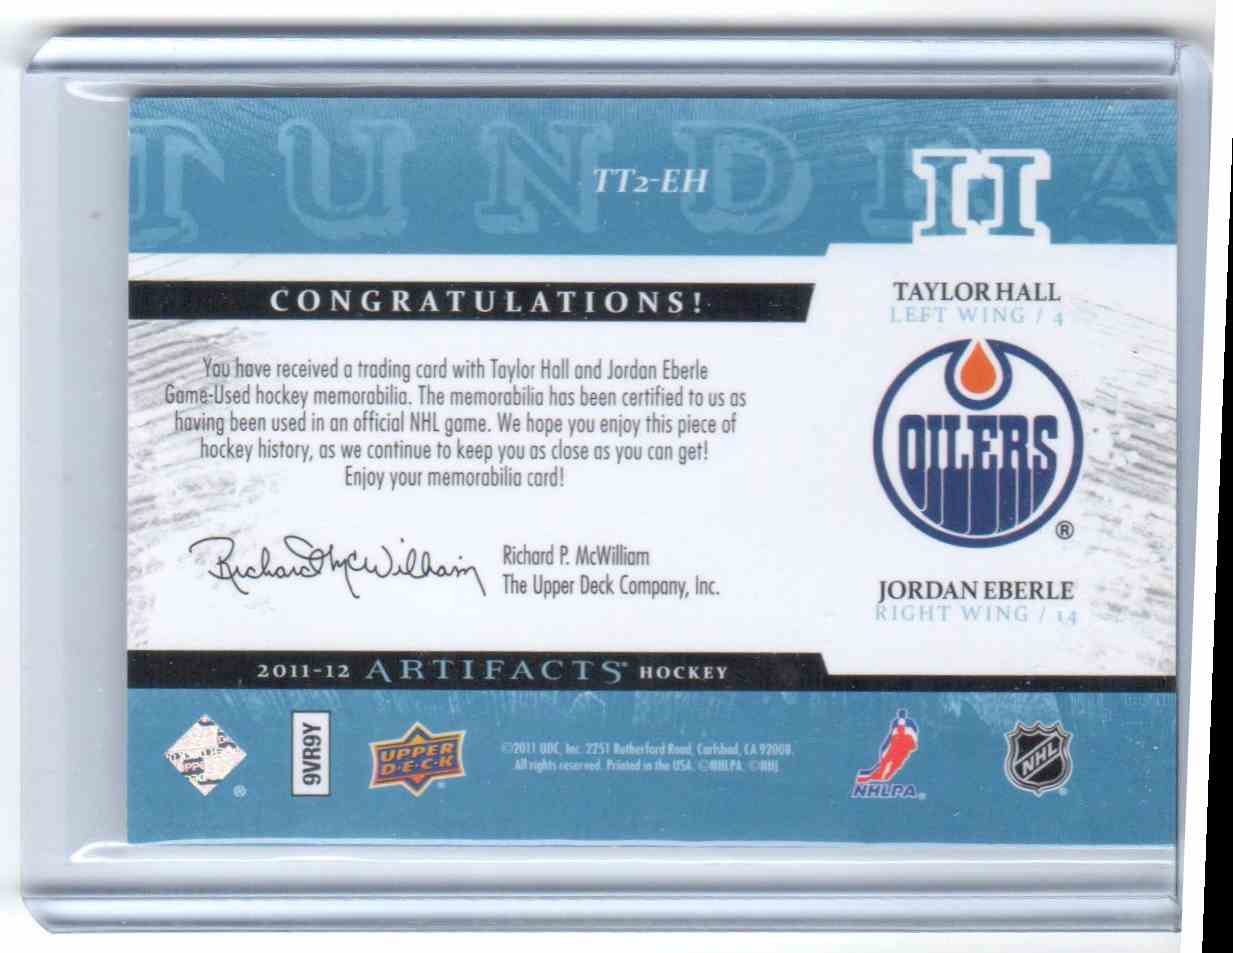 2011-12 Upper Deck Artifacts Tundra Tandem Jersey Blue Taylor Hall, Jordan Eberle #TT2-EH card back image